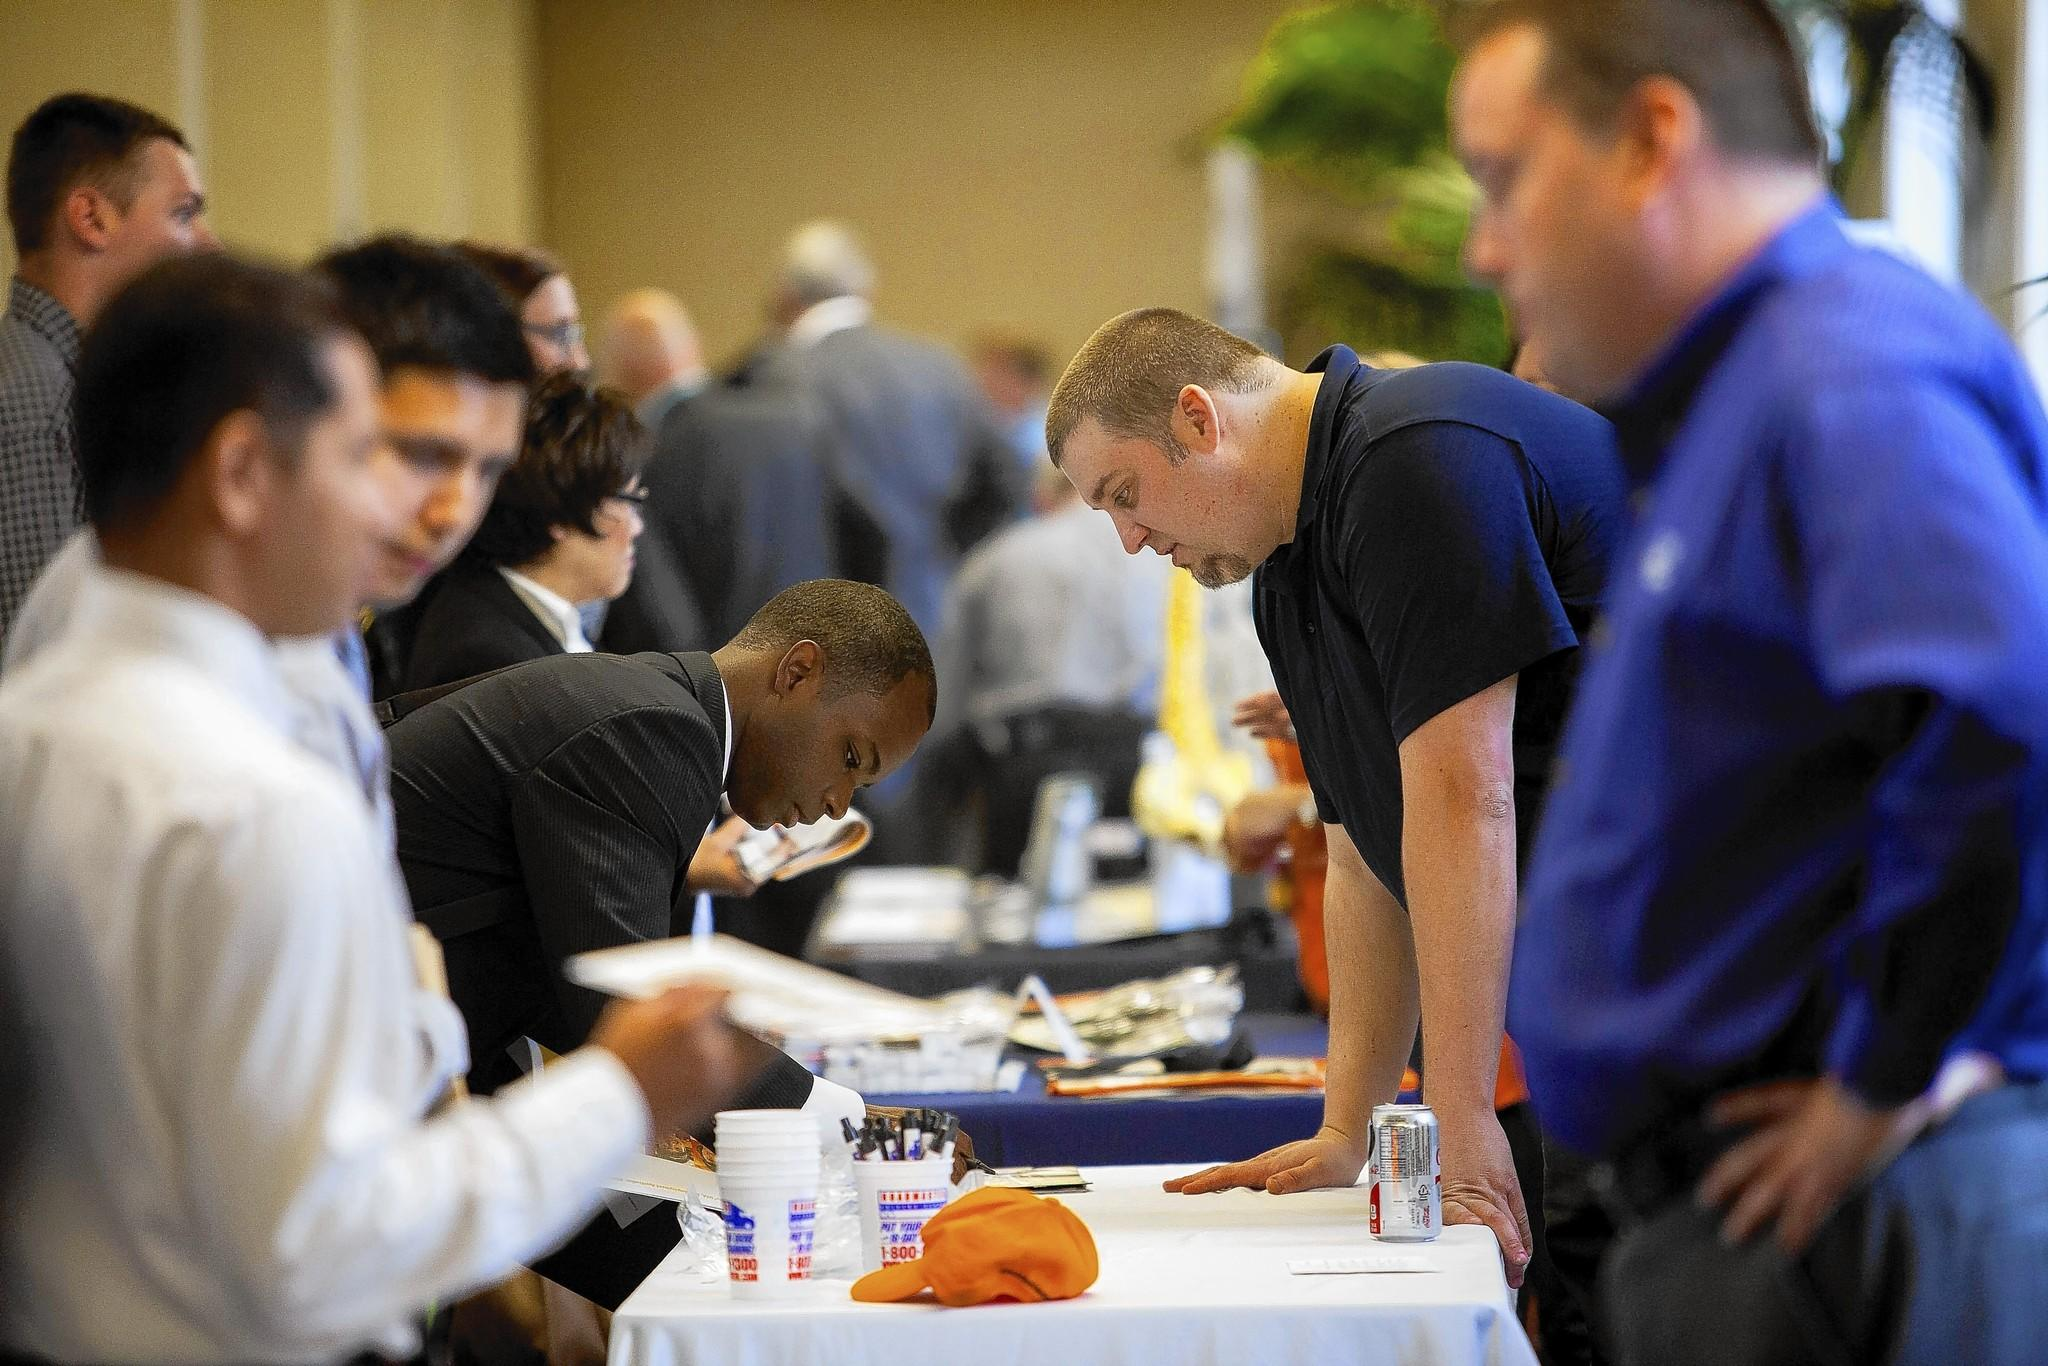 All of the jobs added in March came in the private sector, lifting total non-government payrolls to a new peak. Above, job seekers speak with representatives at a military veteran job fair in San Diego.